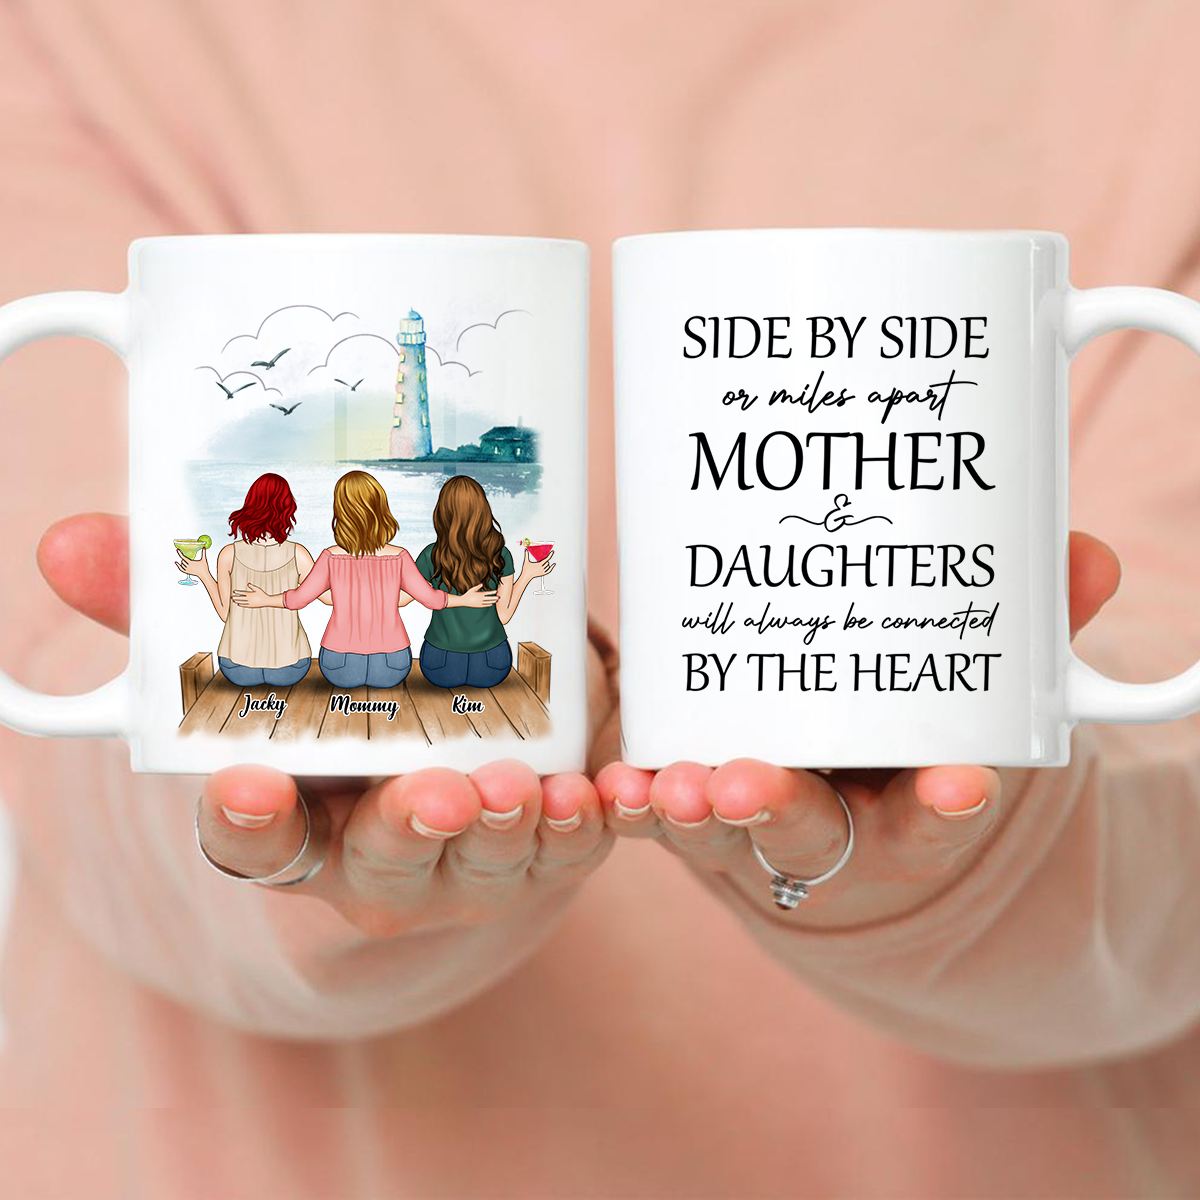 Up to 5 Mother and Daughters - Customized Background - Side by side or miles apart